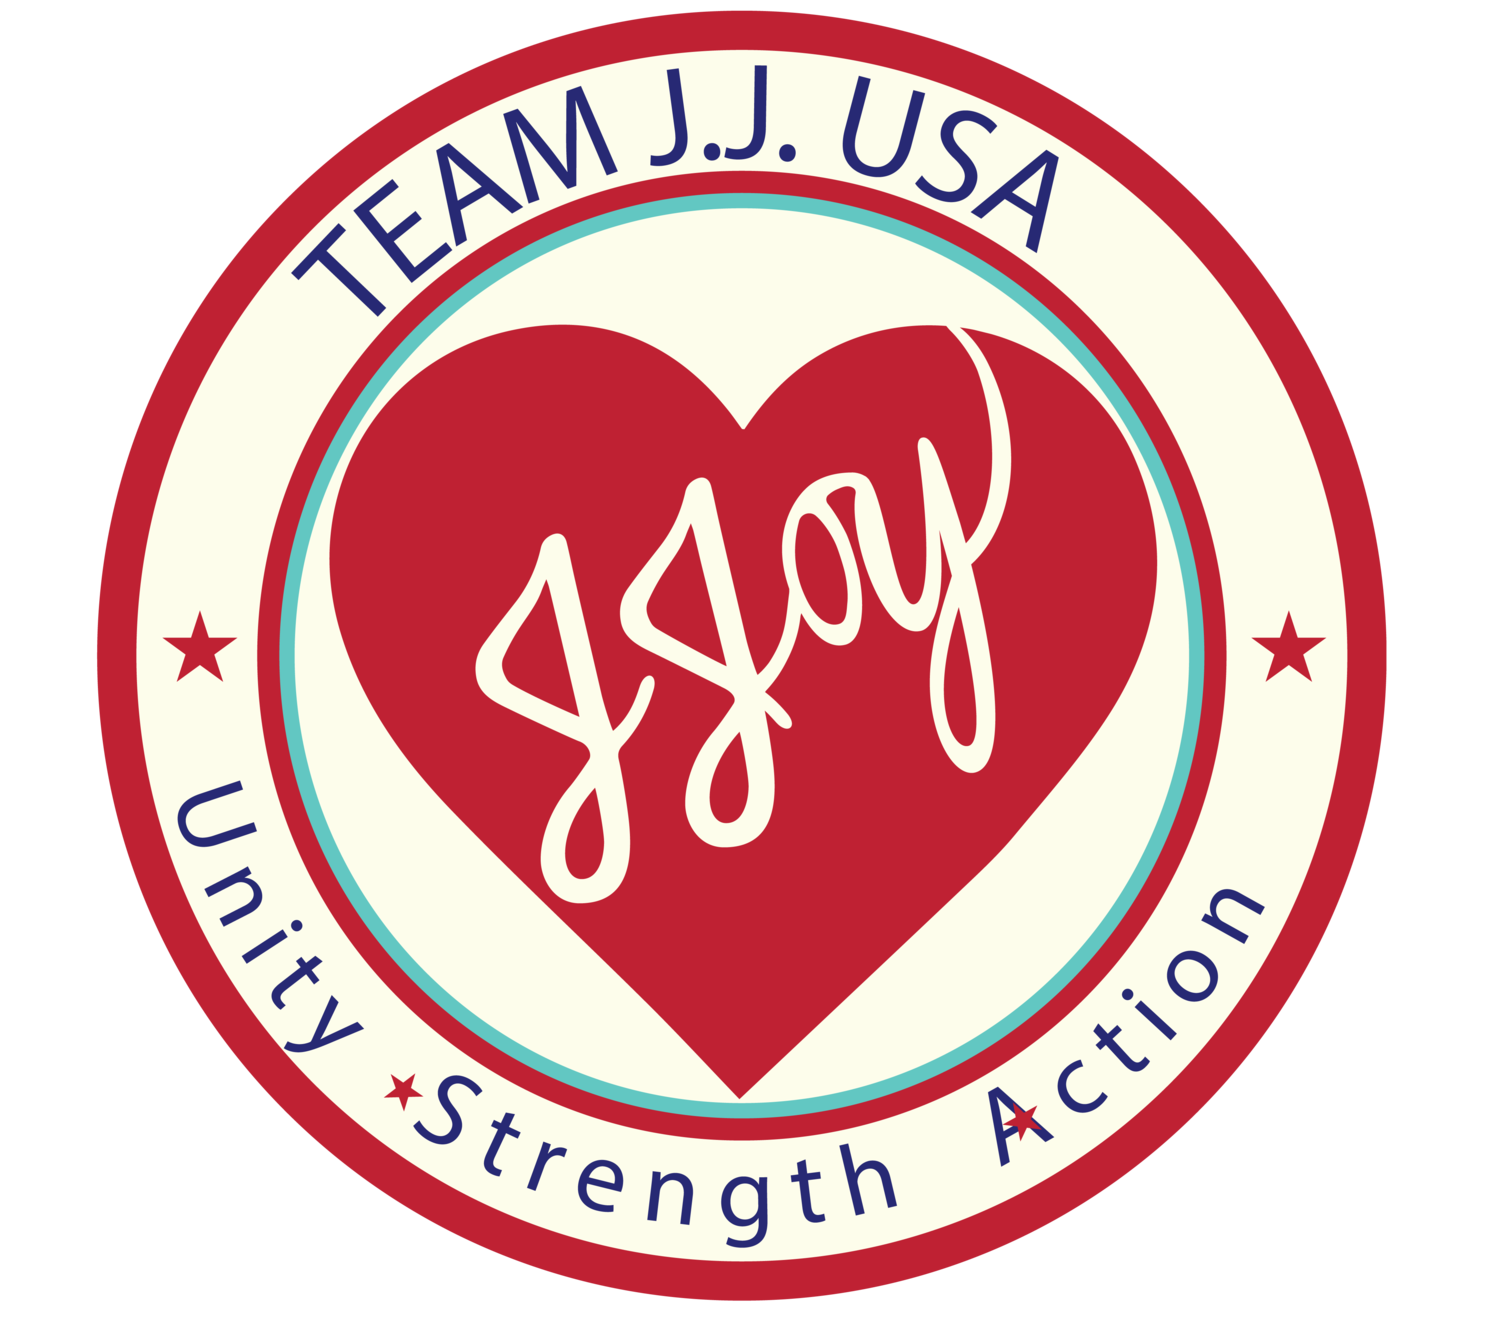 Team JJ USA